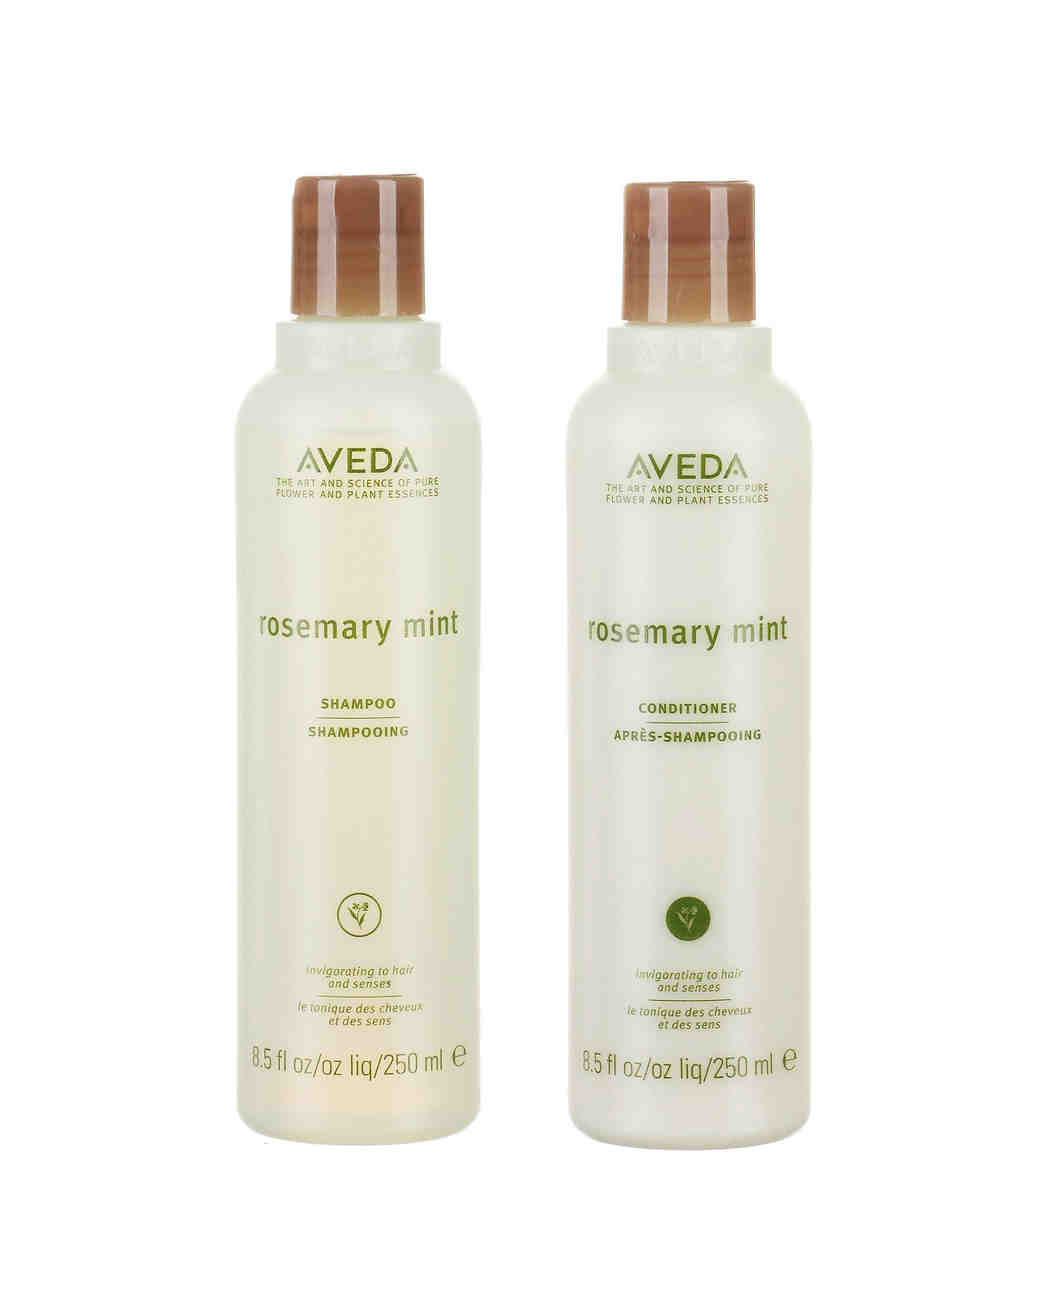 big-day-beauty-awards-aveda-rosemary-mint-shampoo-and-conditioner-0216.jpg